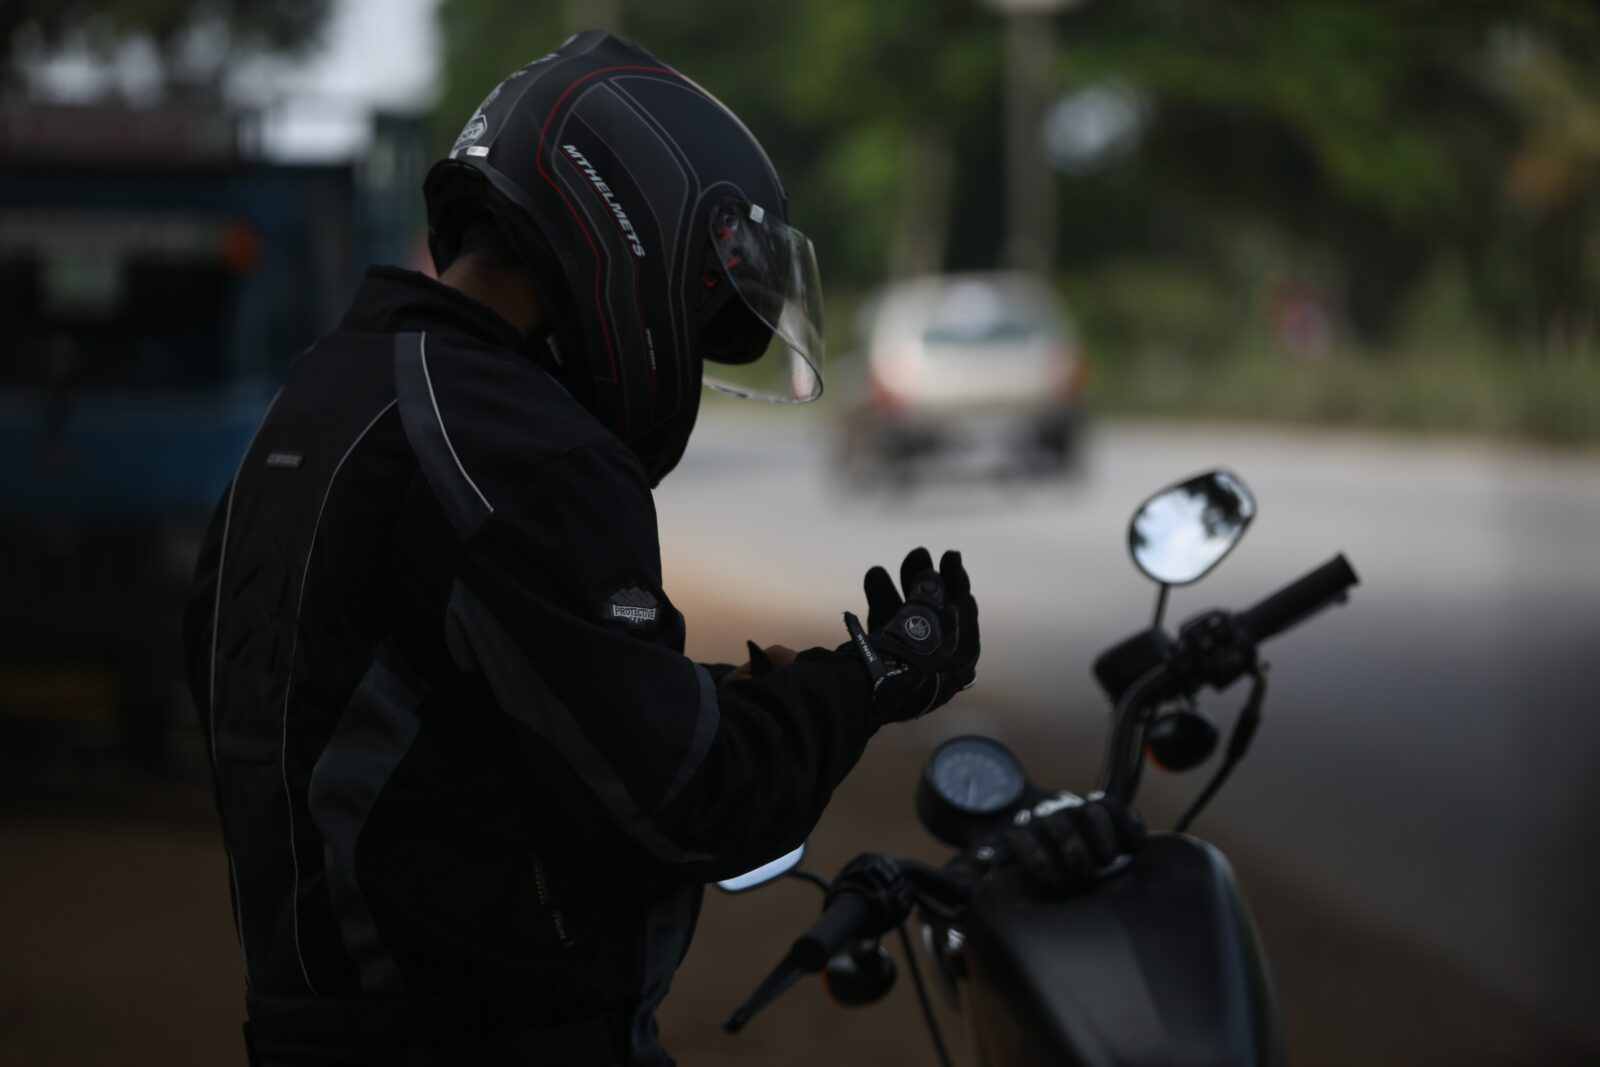 What Evidence Should You Have for a Motorcycle Claim?